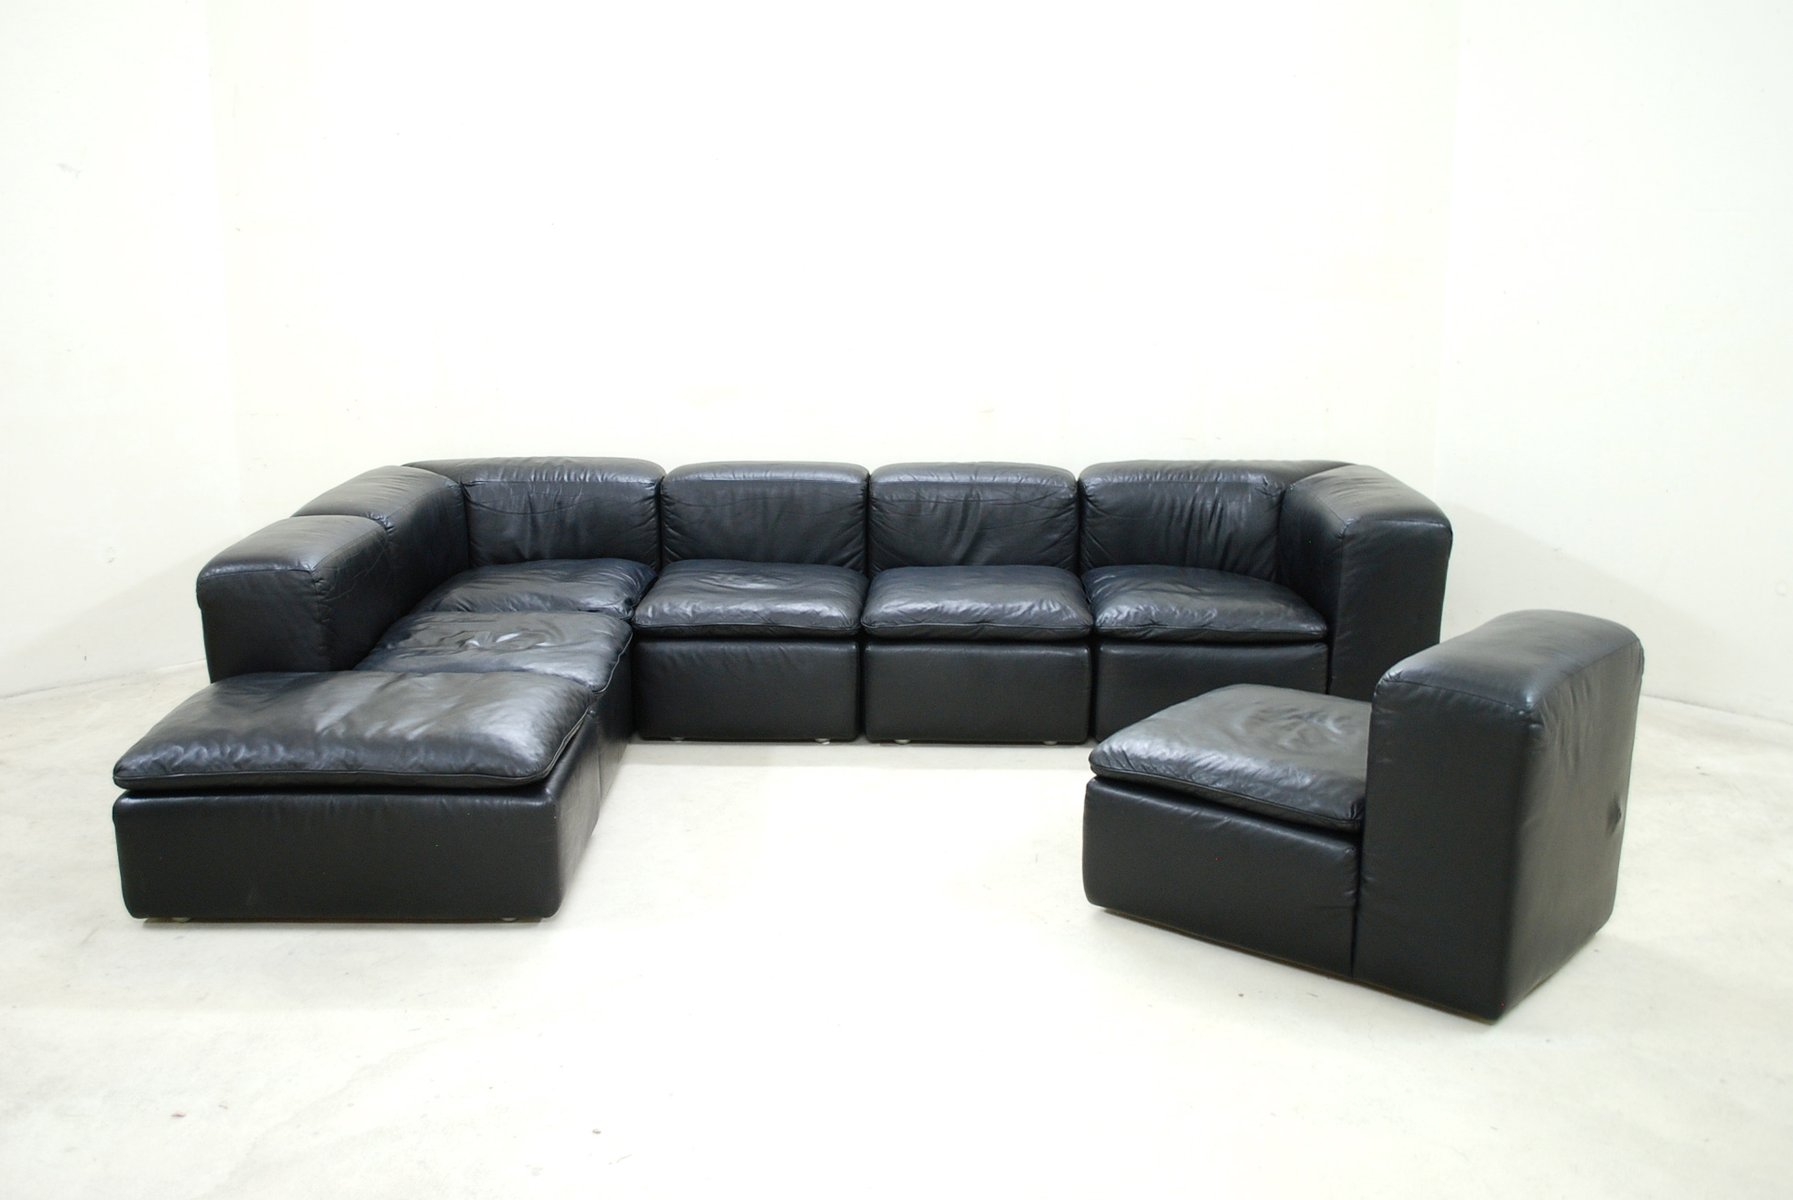 modular black cube design wk 550 leather sofa by ernst martin dettinger for wk m bel for sale at. Black Bedroom Furniture Sets. Home Design Ideas